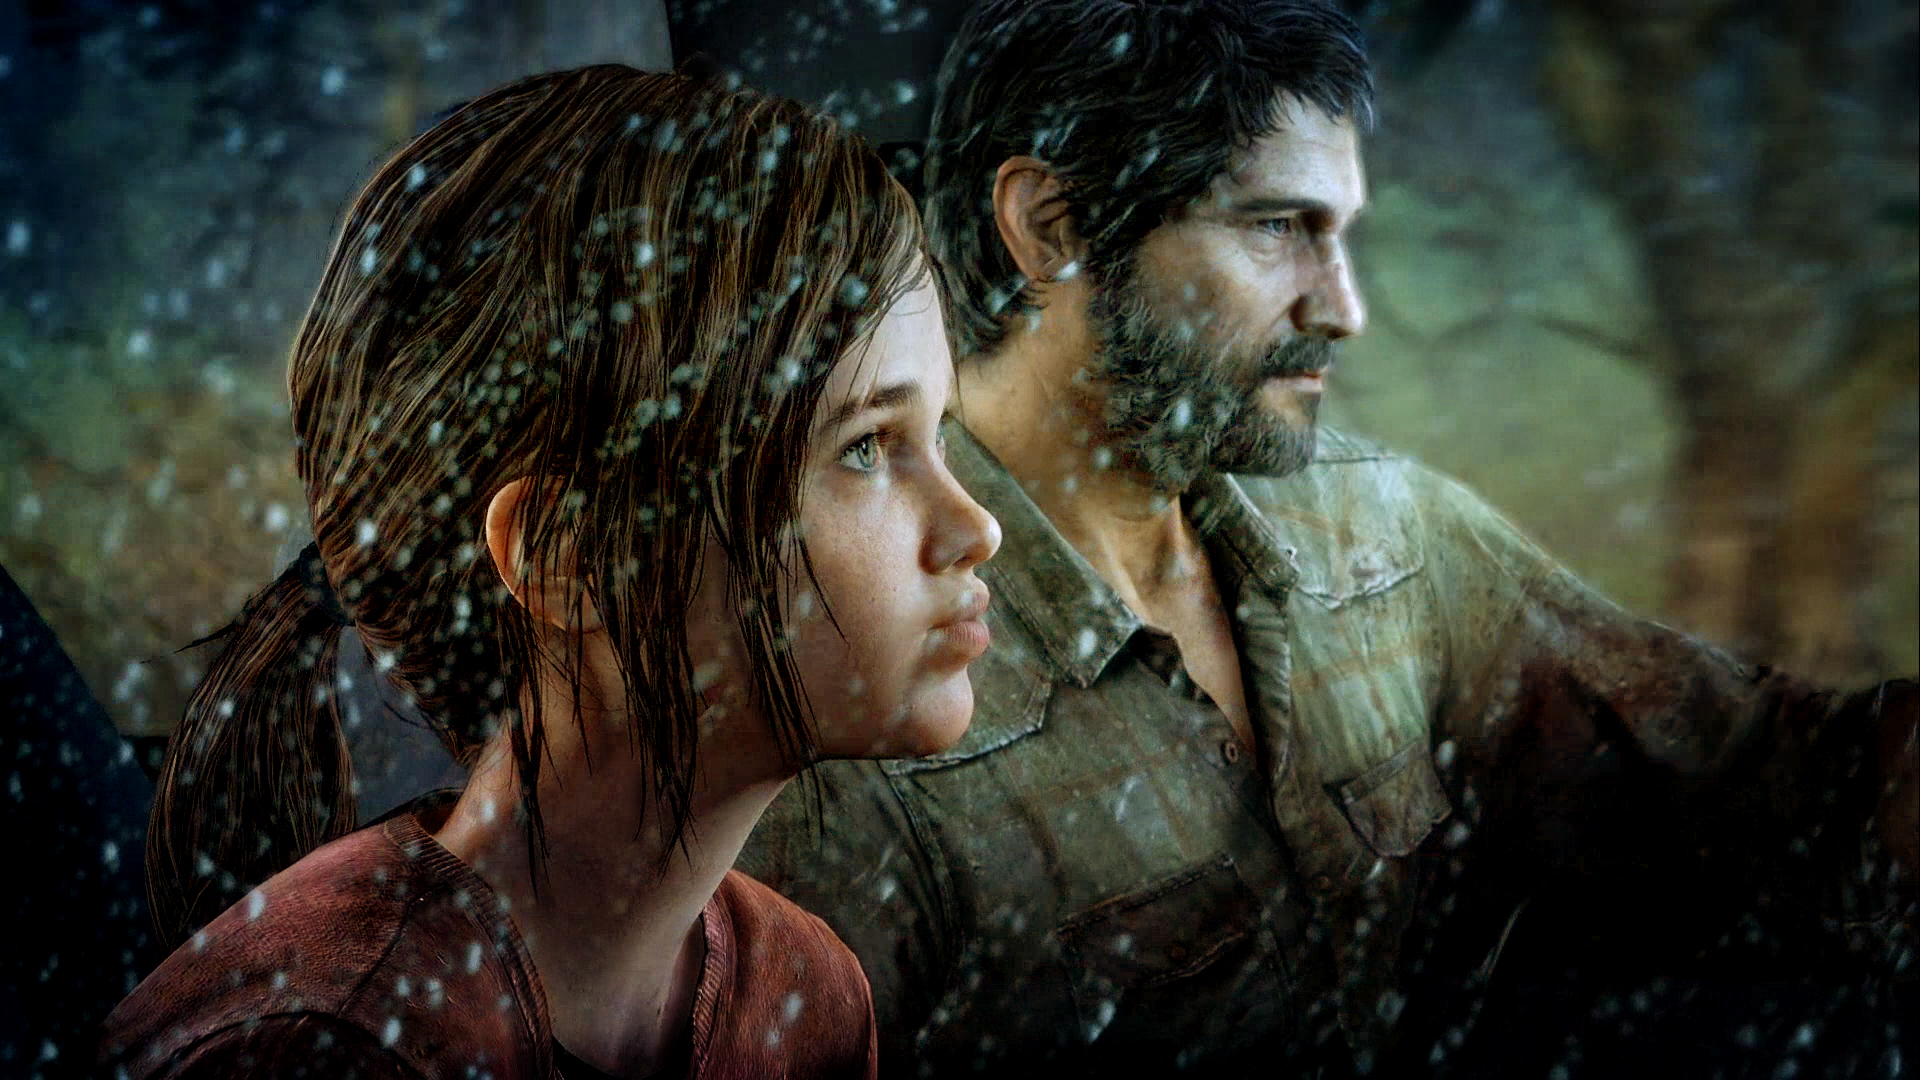 The Last Of Us Joel And Ellie By Sekizbin On Deviantart